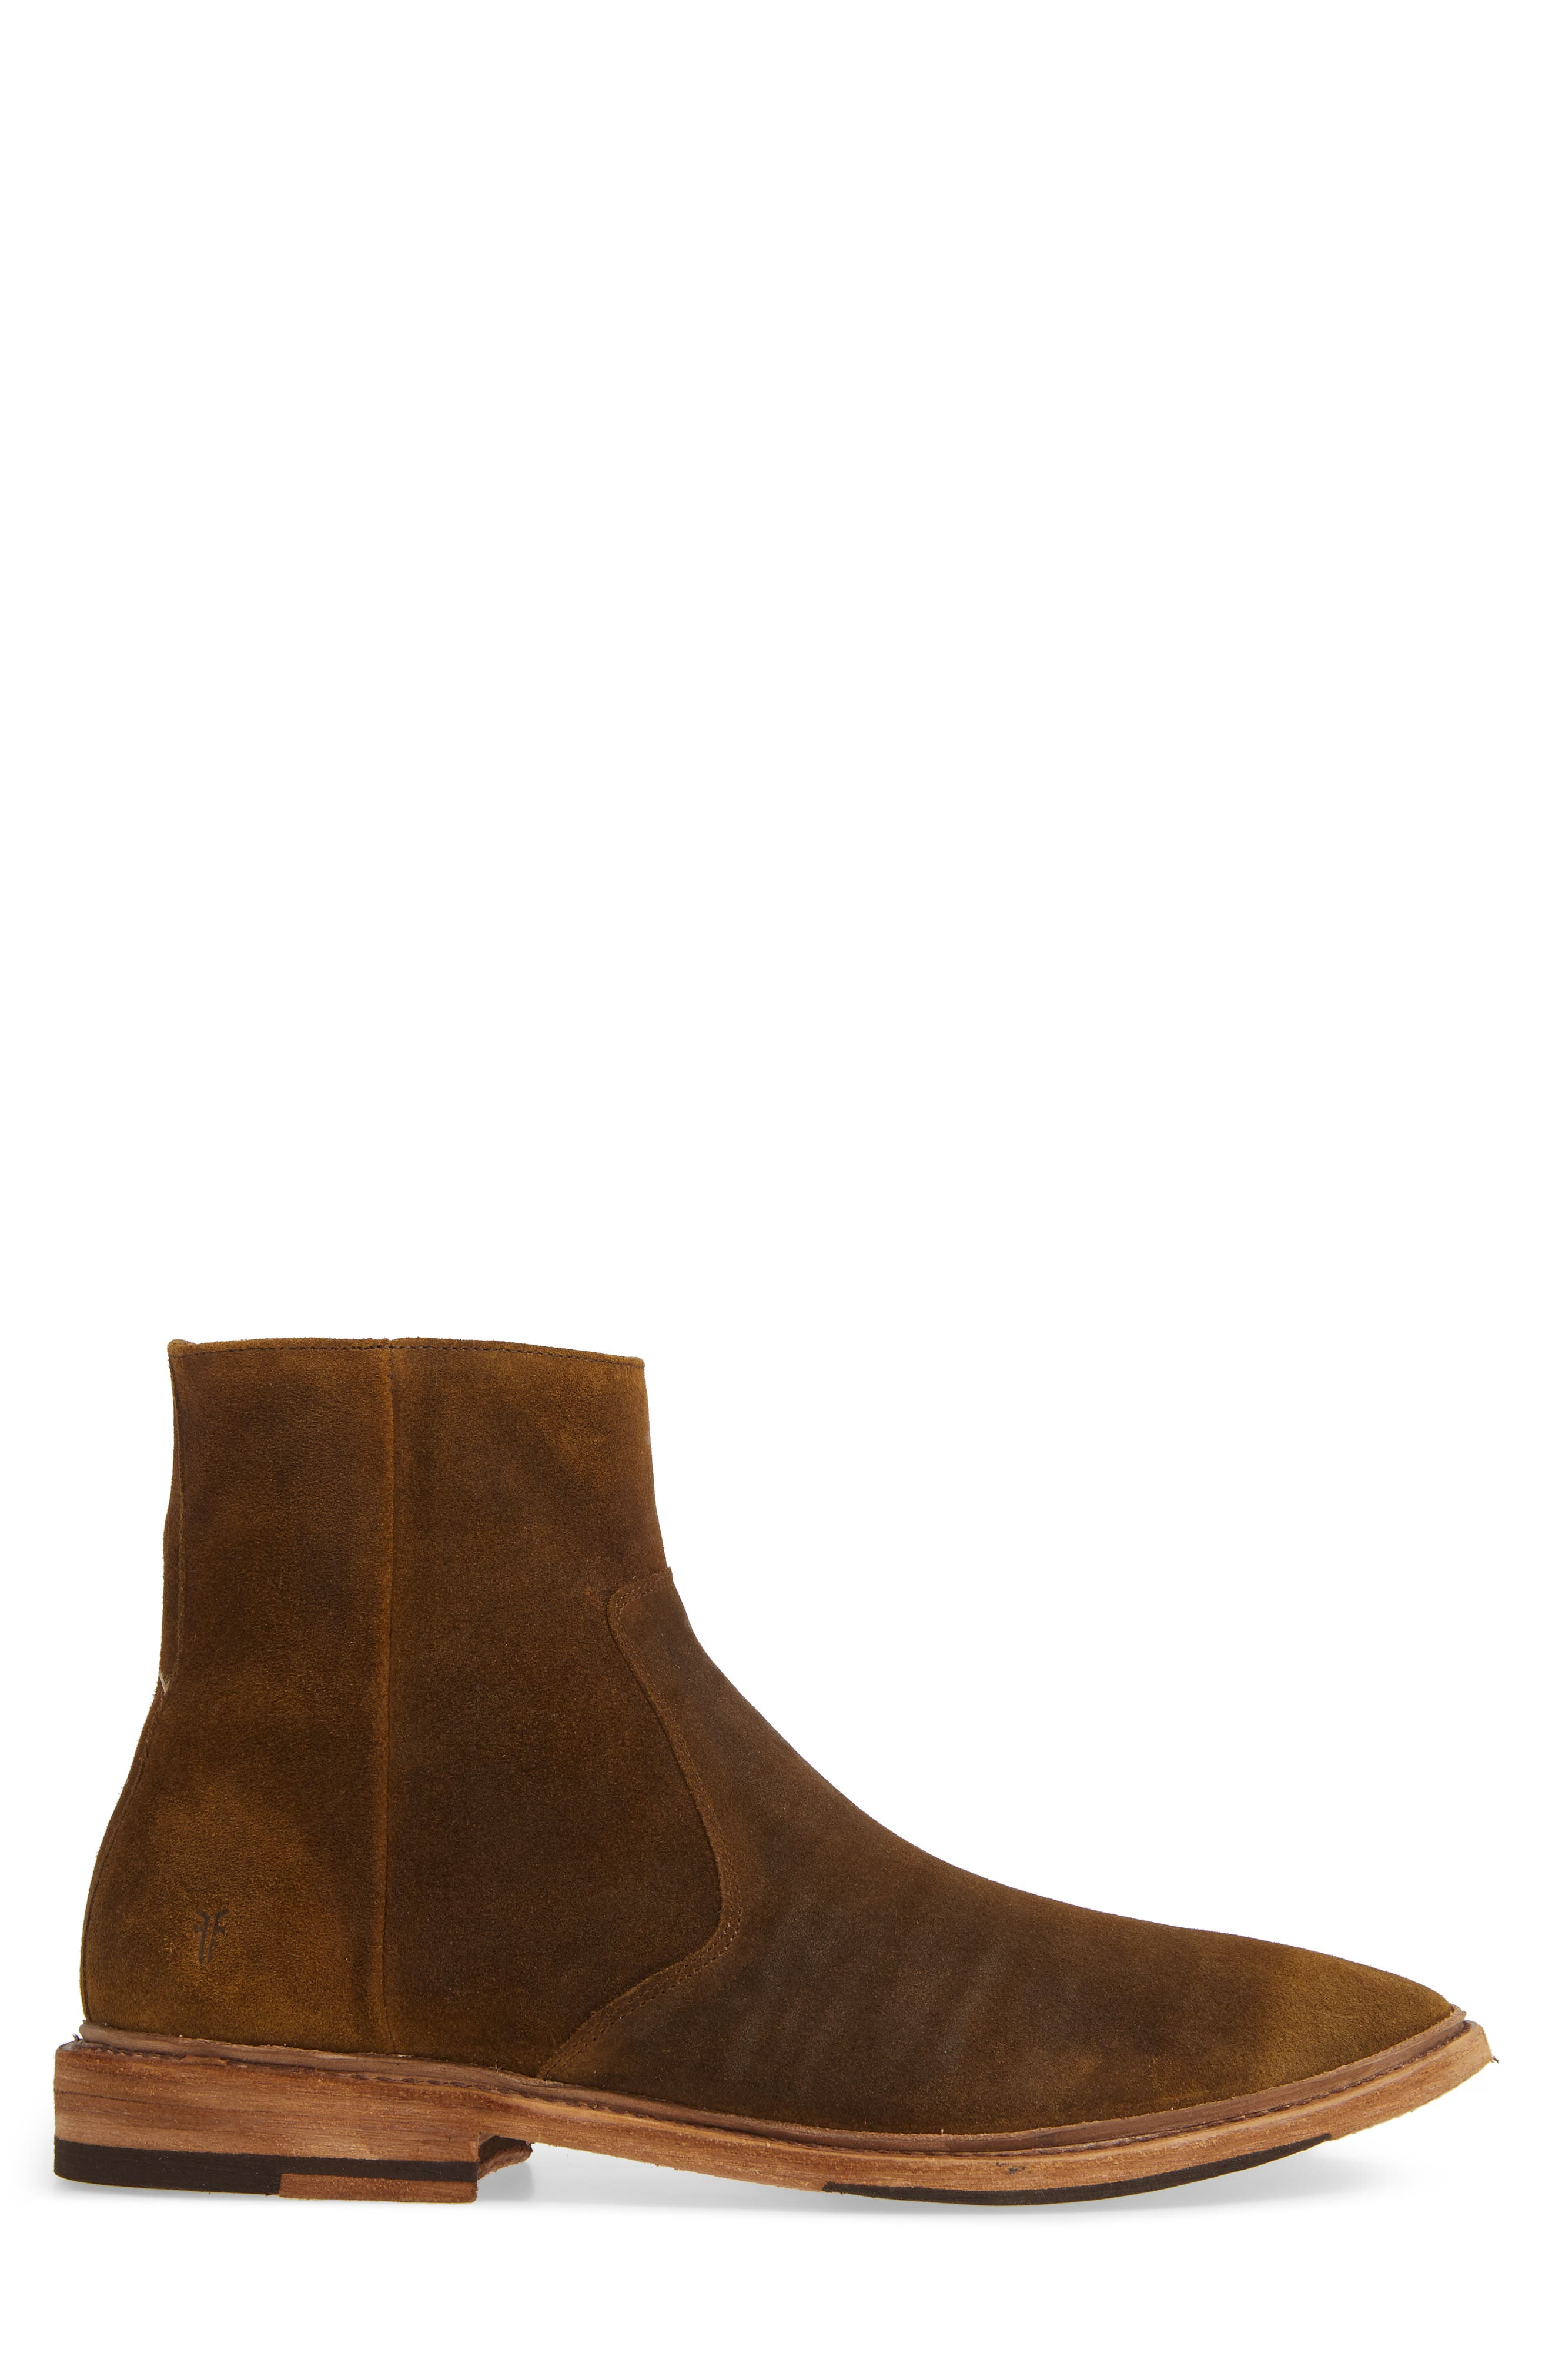 Paul Zip Boot,                             Alternate thumbnail 3, color,                             TAN SUEDE